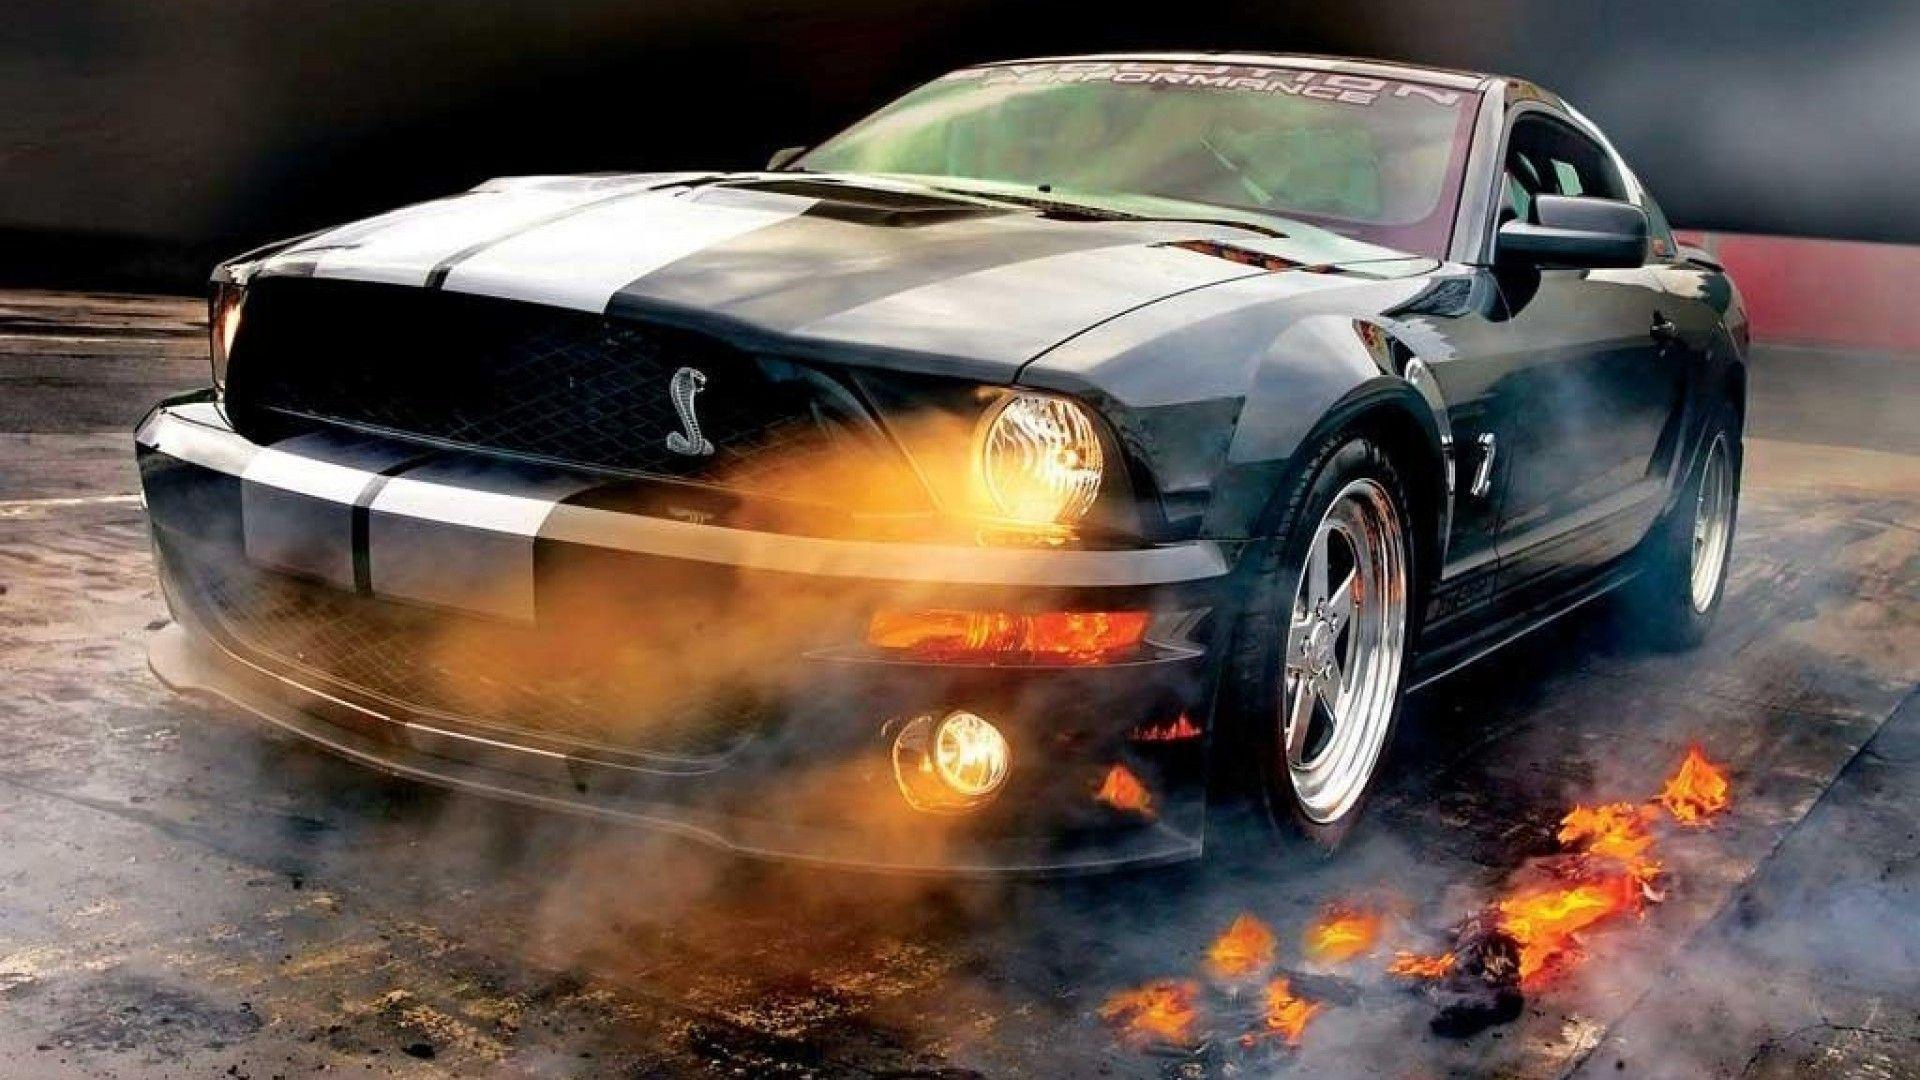 Ford Mustang Wallpaper 1798 1920x1080 px ~ FreeWallSource.